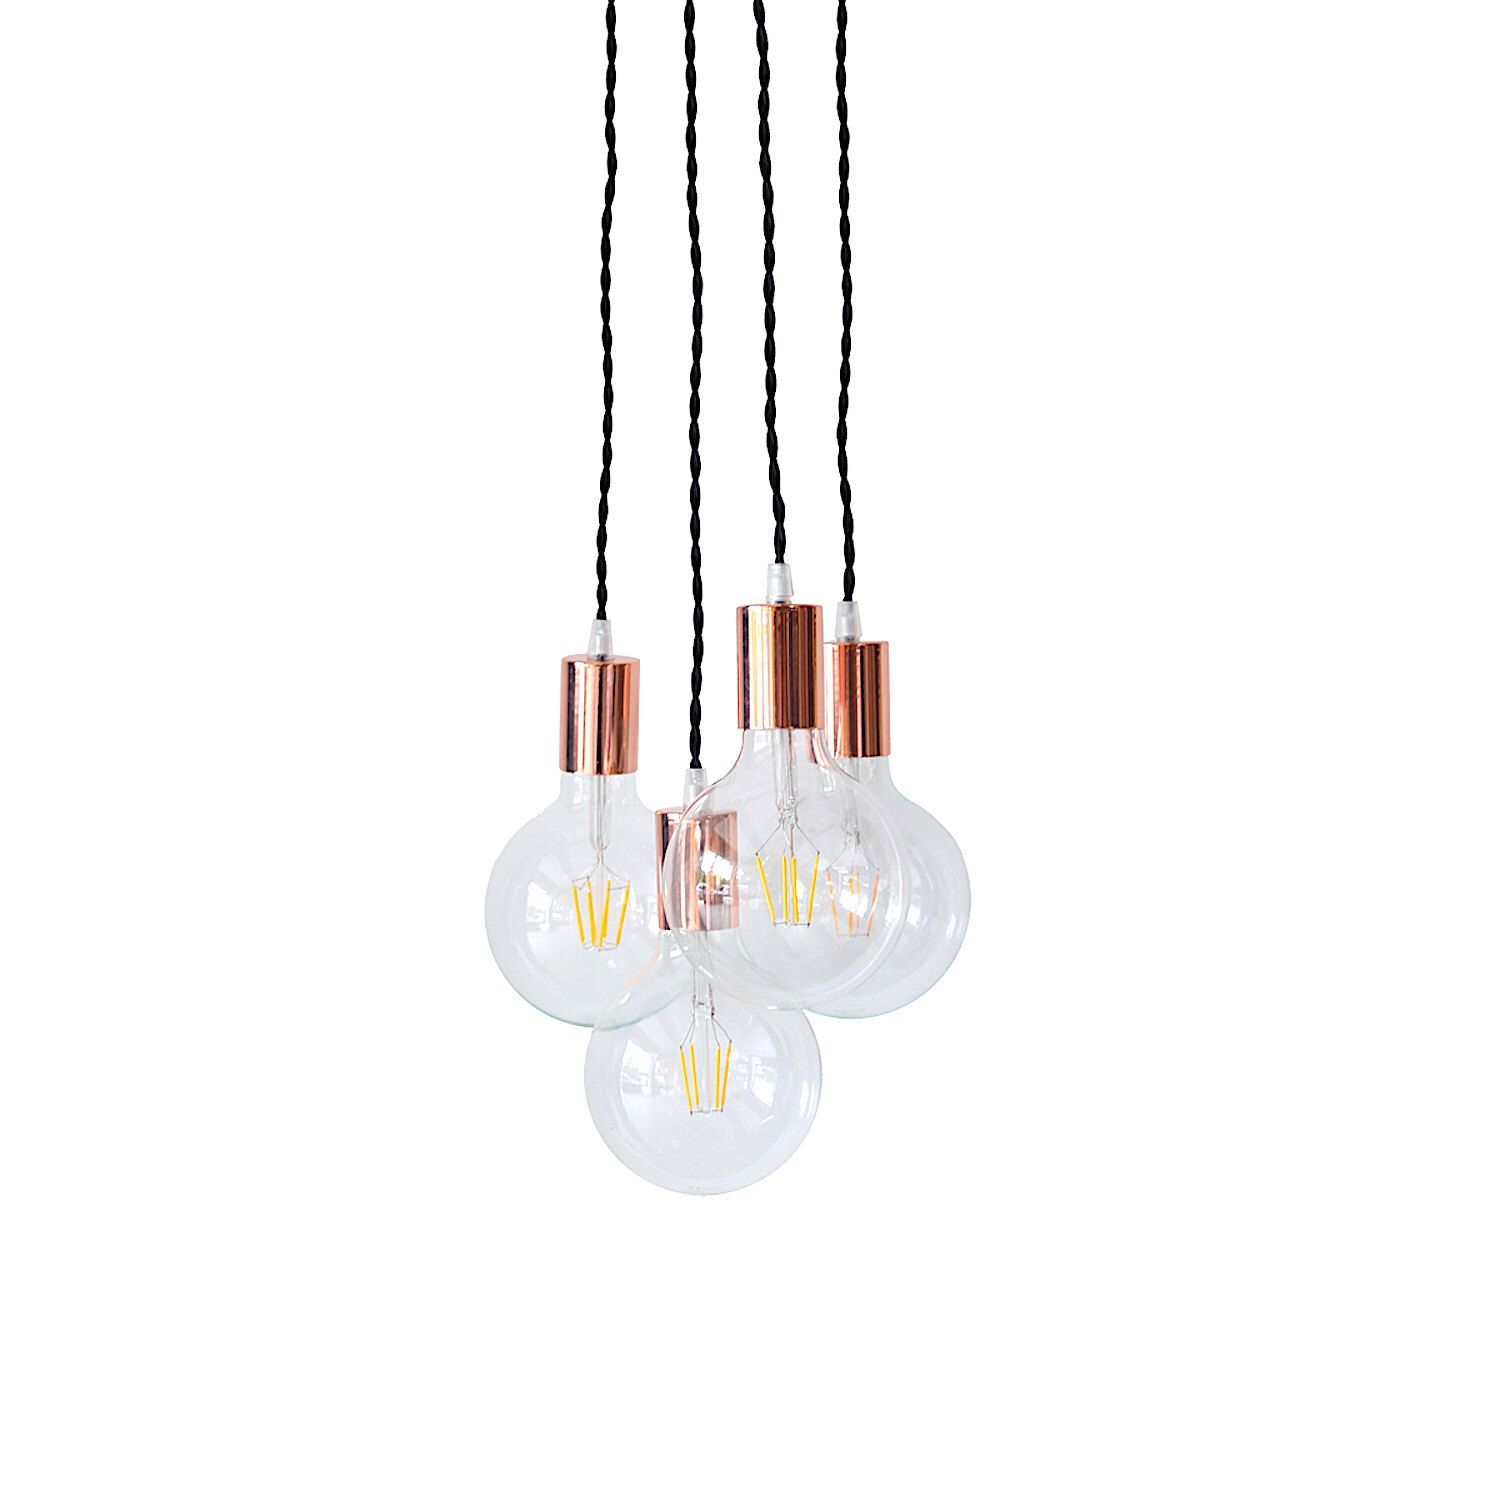 Copper Chandelier Light Cluster Rose Gold Pendant Lighting Swag